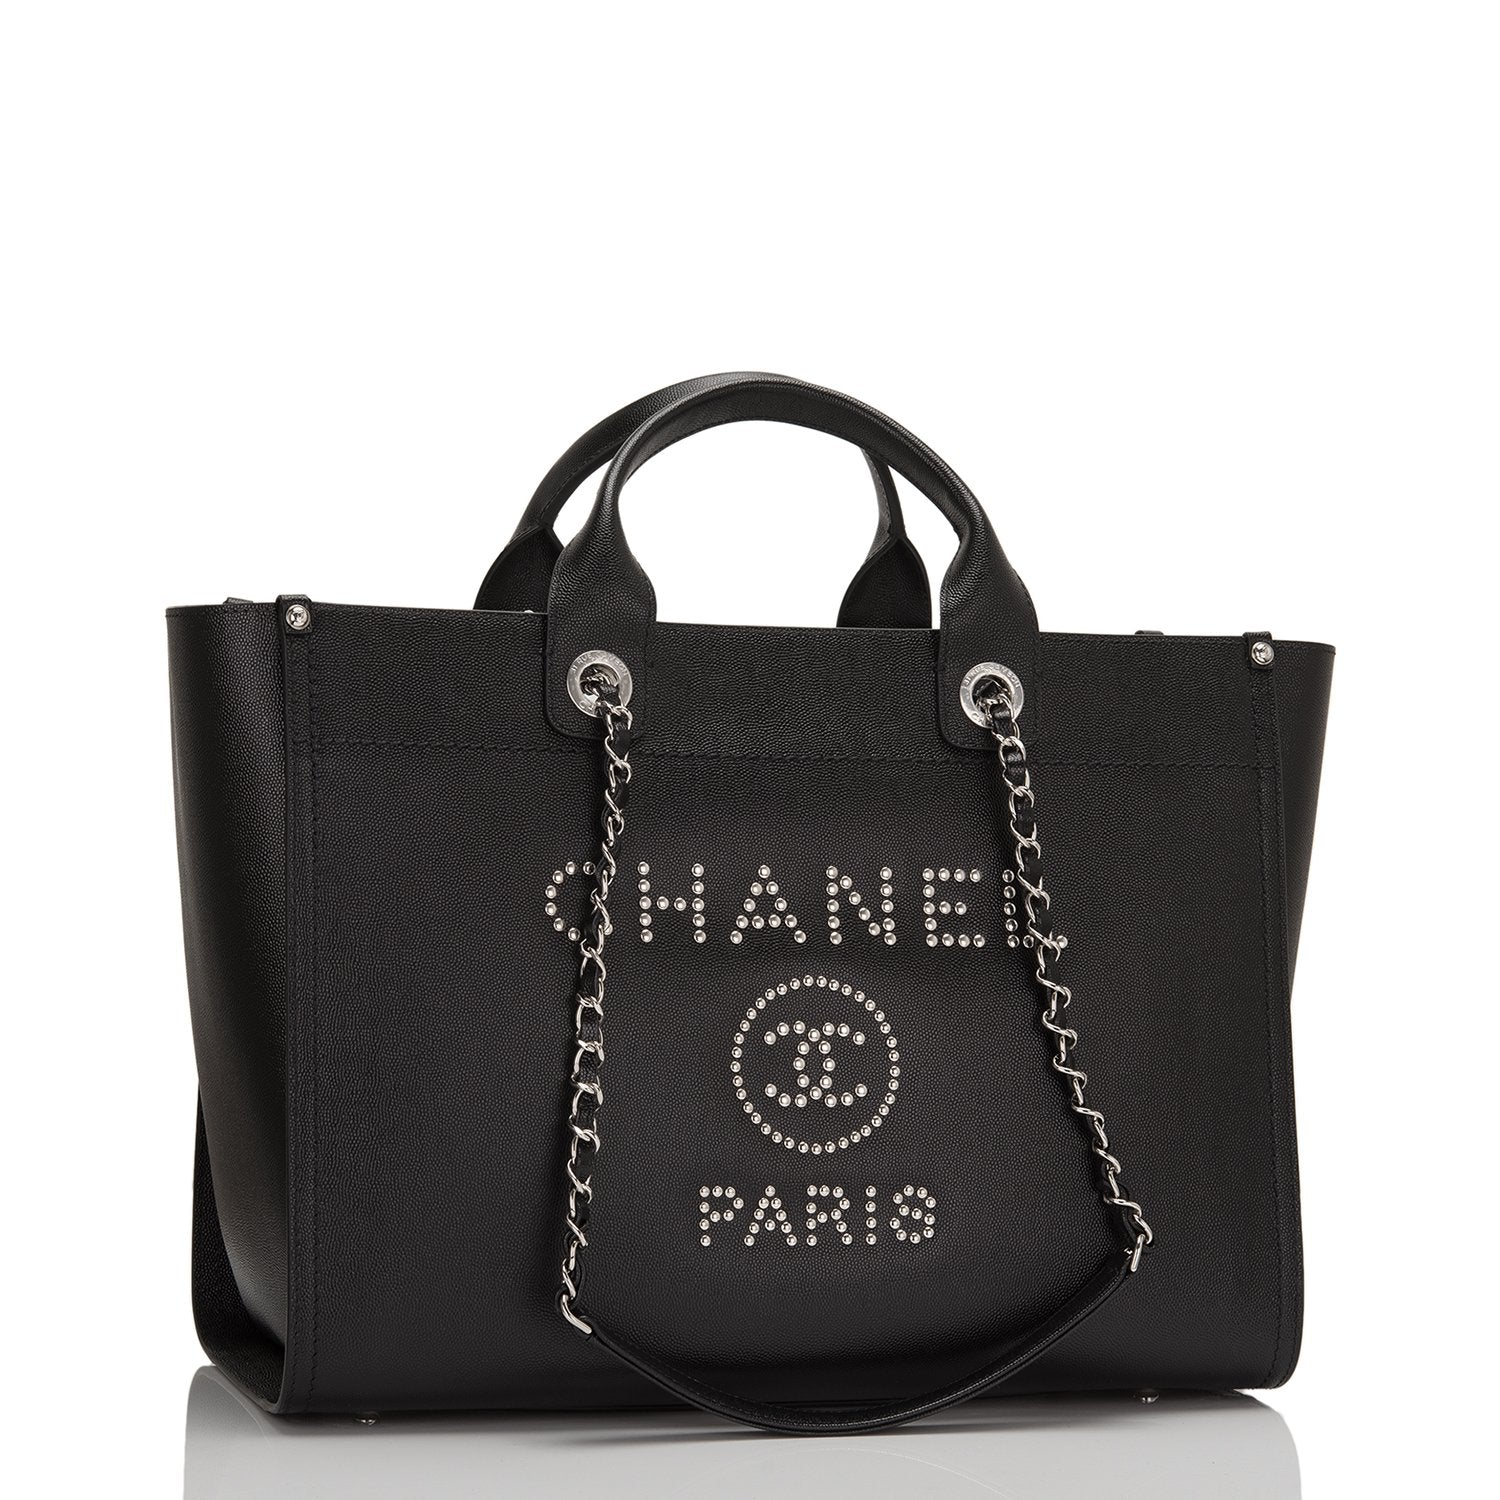 d4c5f56b7348 Chanel Deauville Tote Black Leather. Chanel Black Leather Large Deauville  Shopping ...